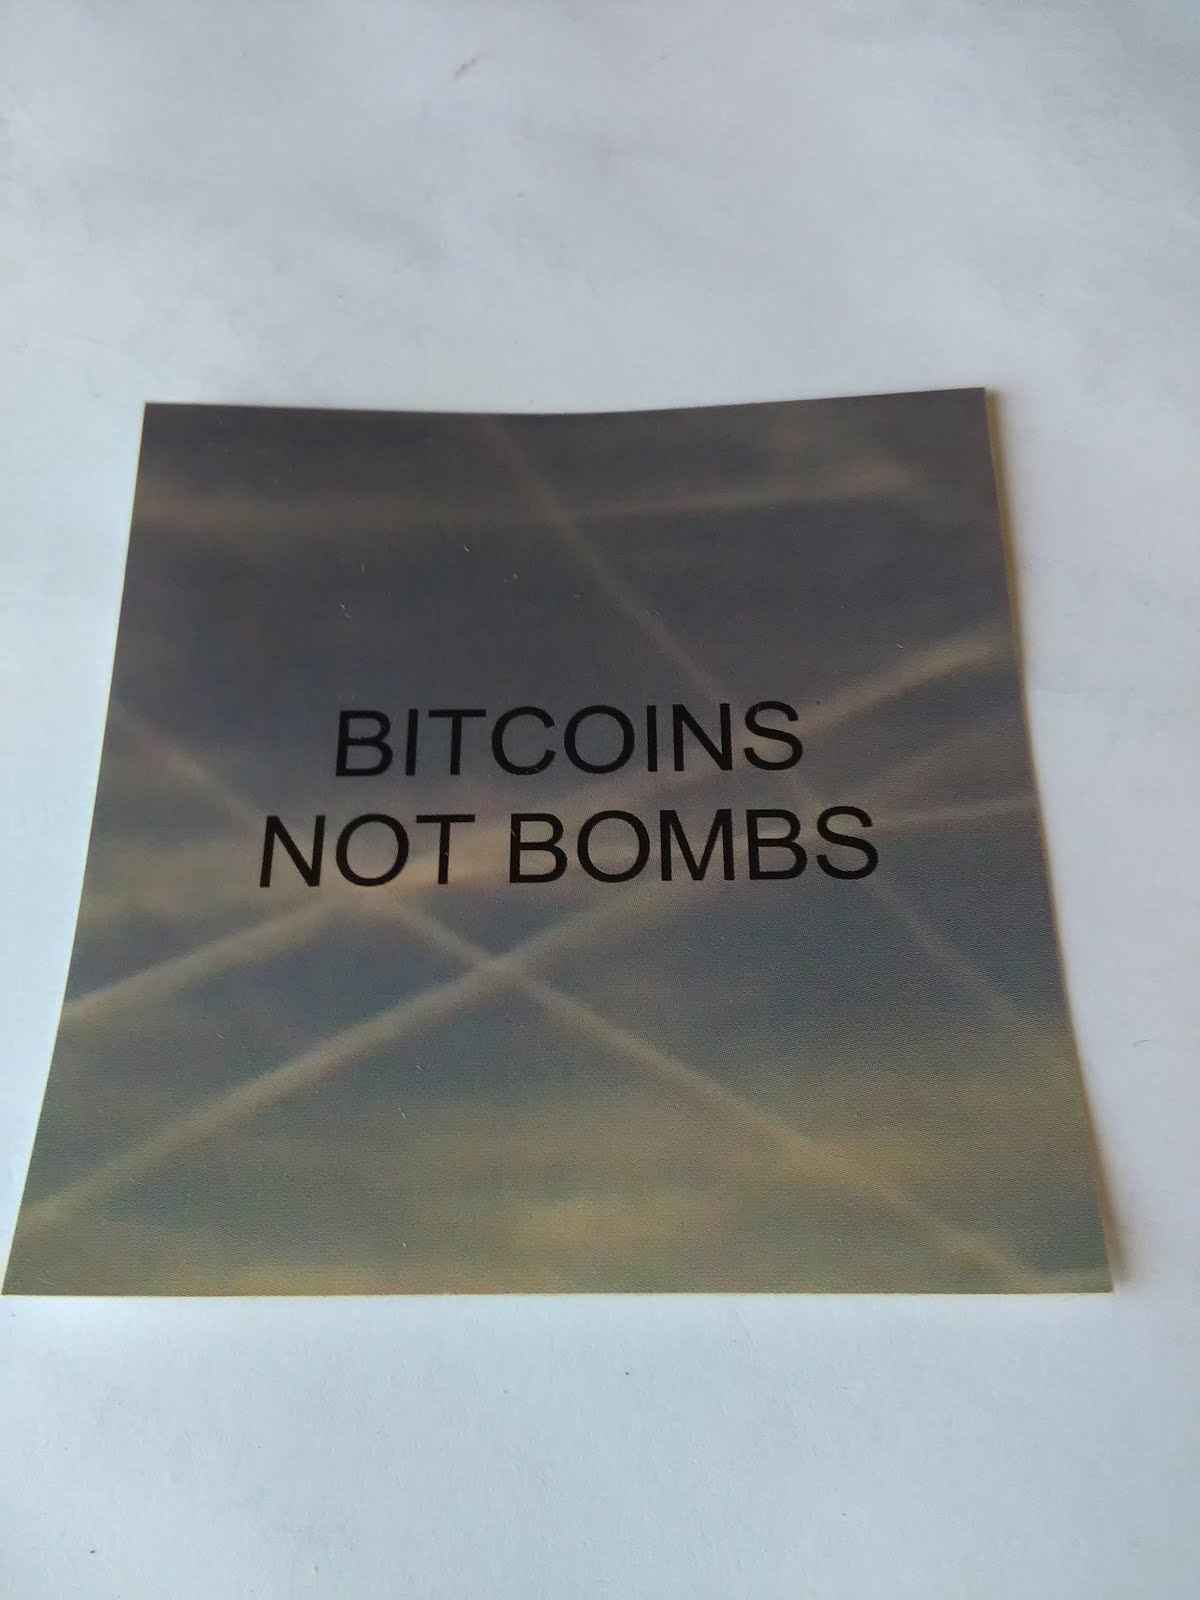 BITCOINS NOT BOMBS - QUALITY VINYL STICKER